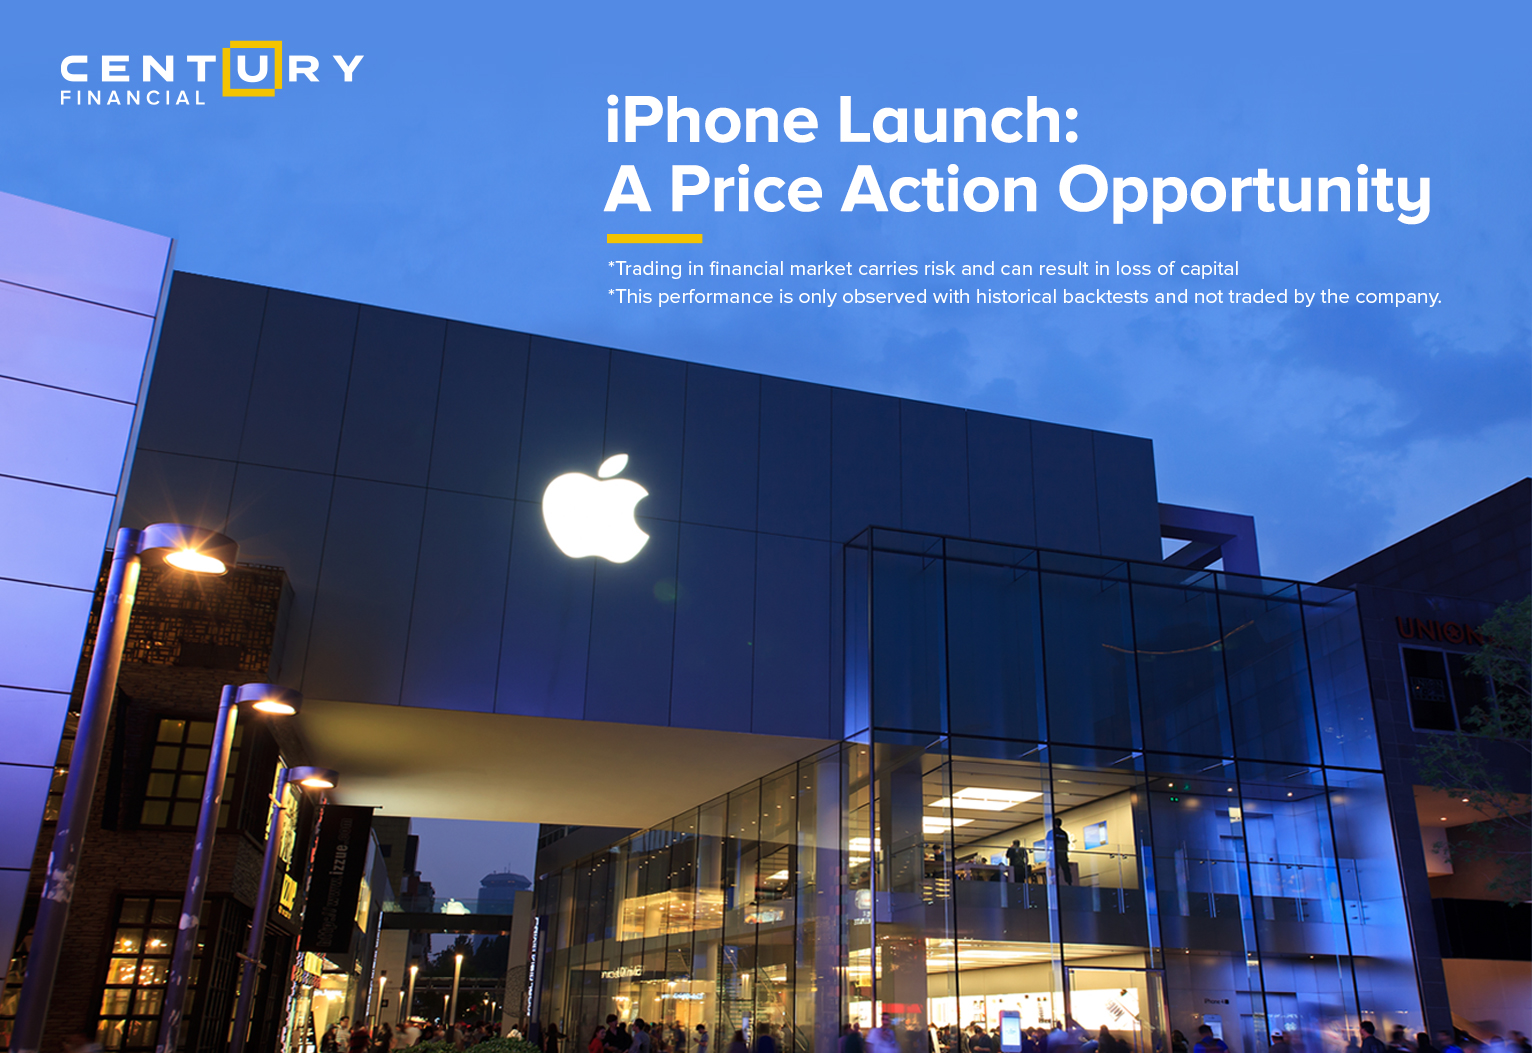 iPhone Launch: A Price Action Opportunity